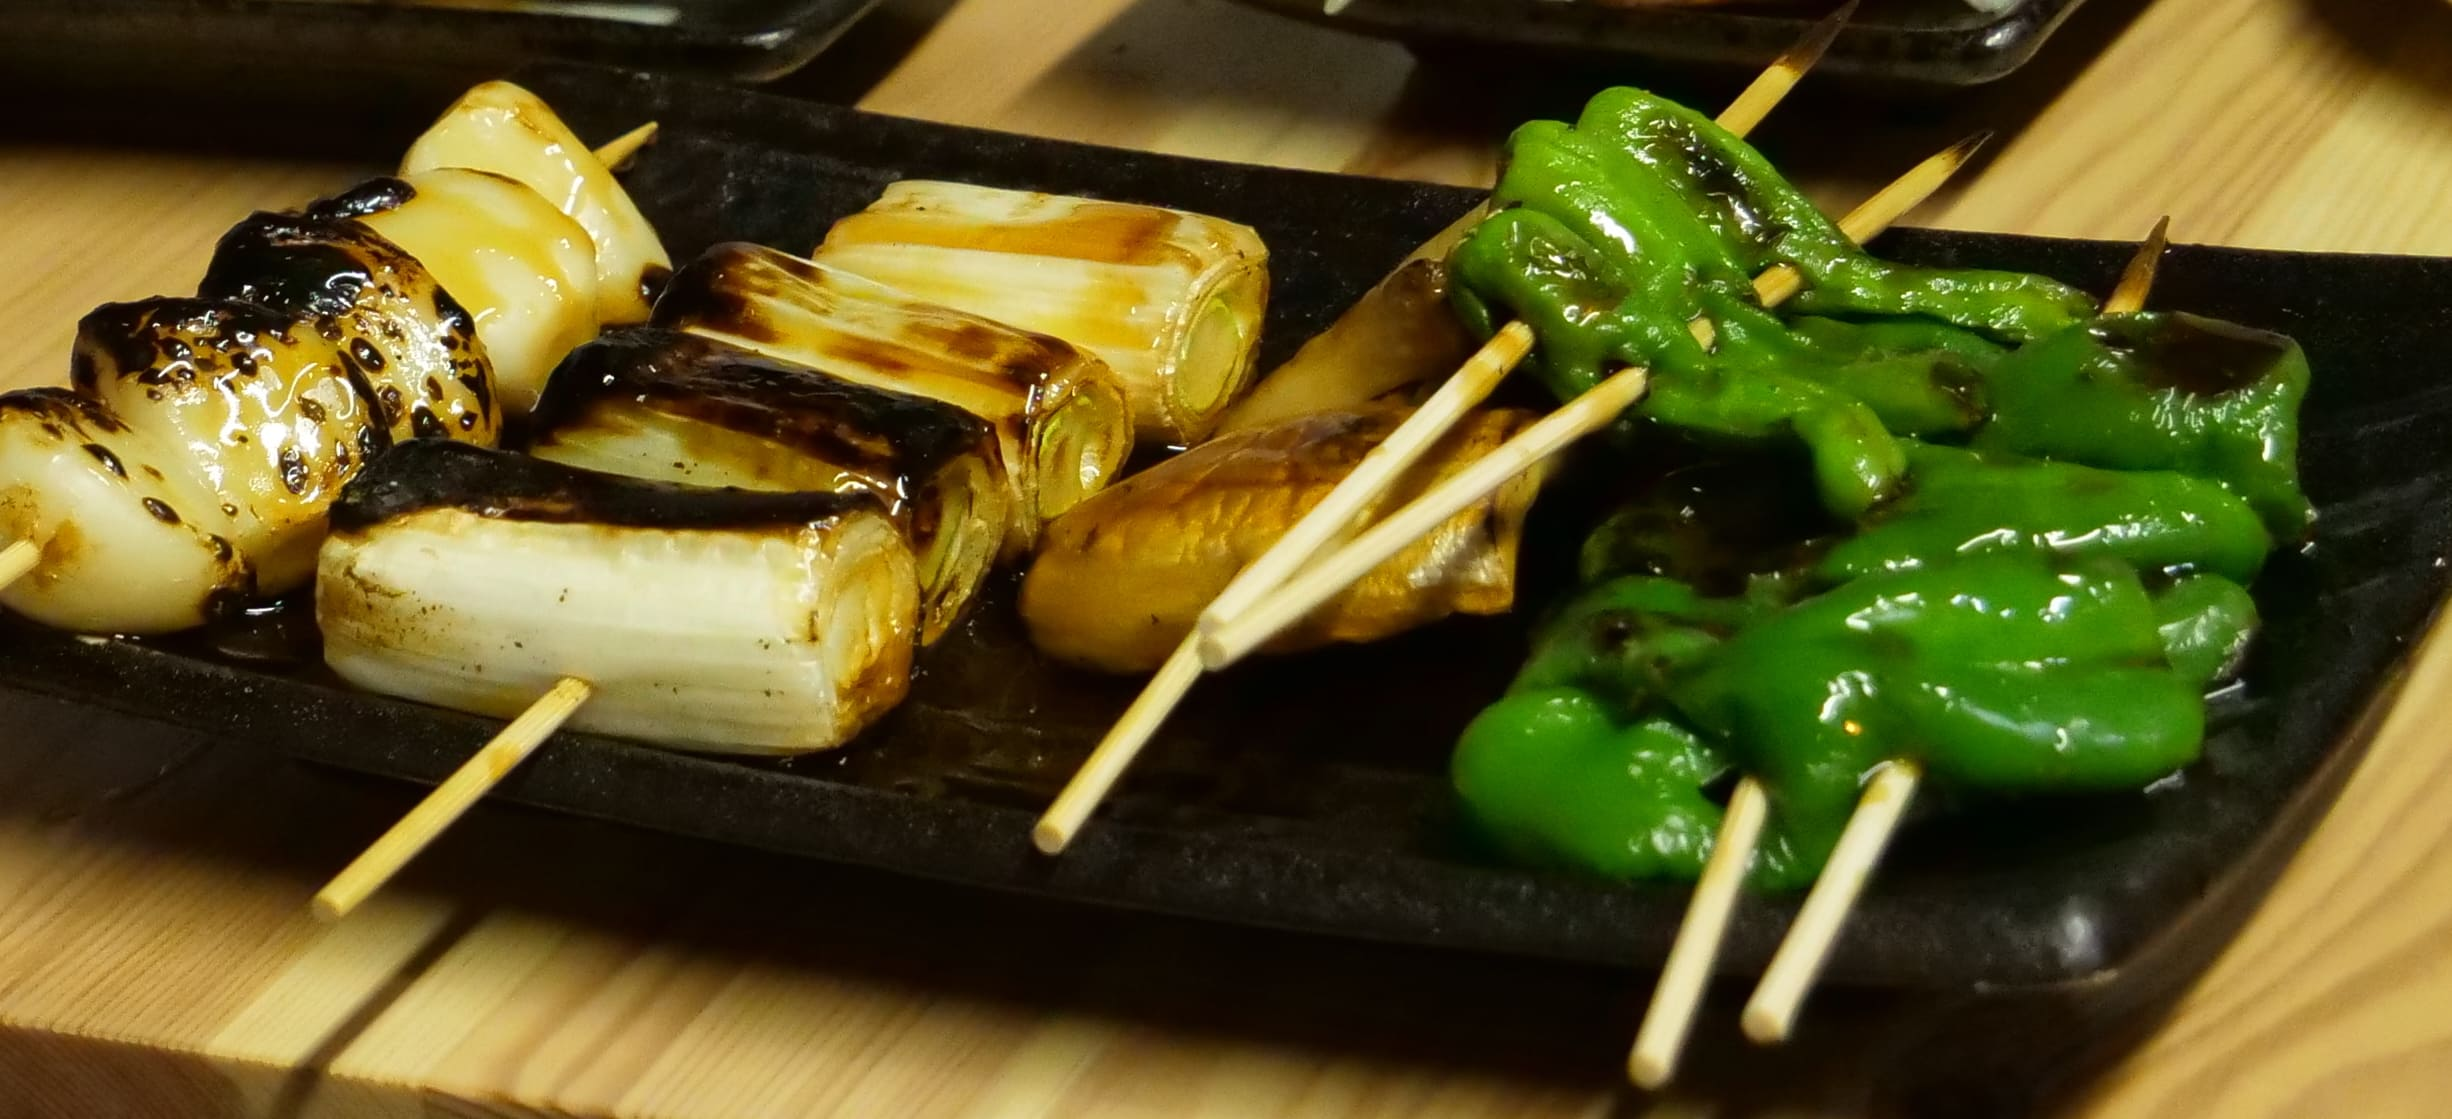 Grilled vegetables Yakitori. You can enjoy authentic plumped tastes of vegetables.